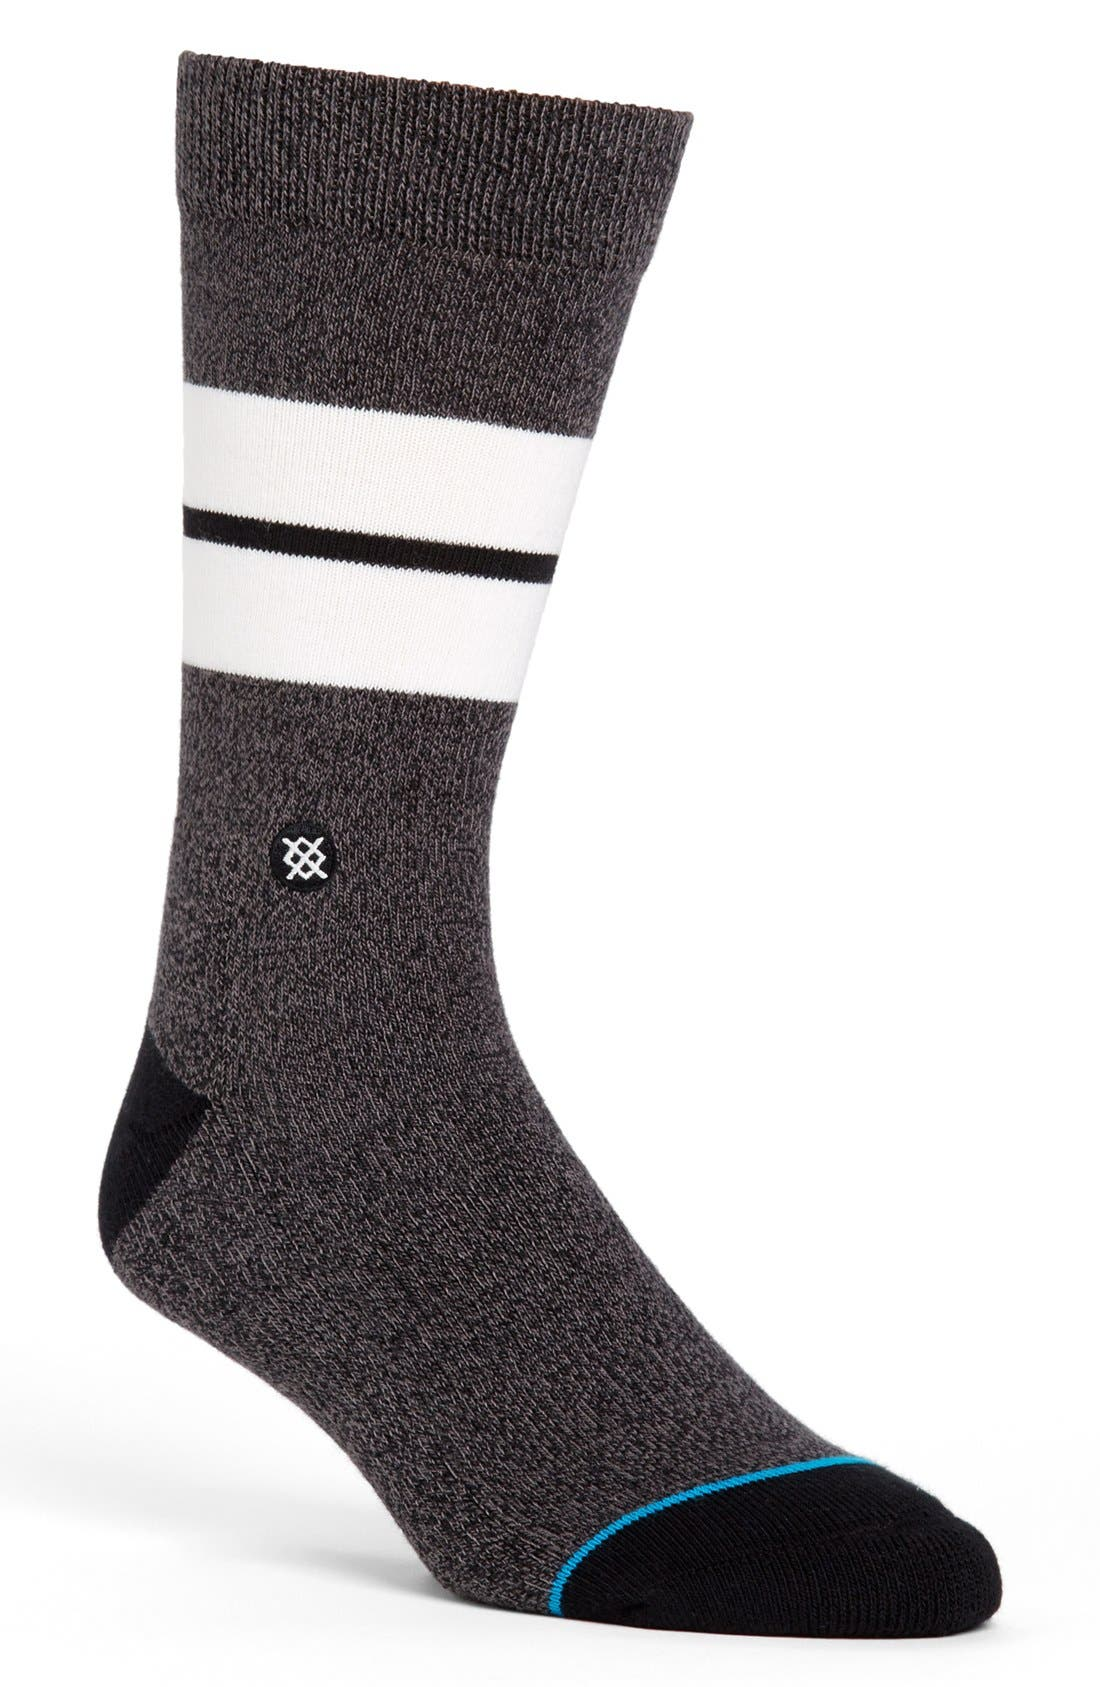 Main Image - Stance 'Sequoia' Socks